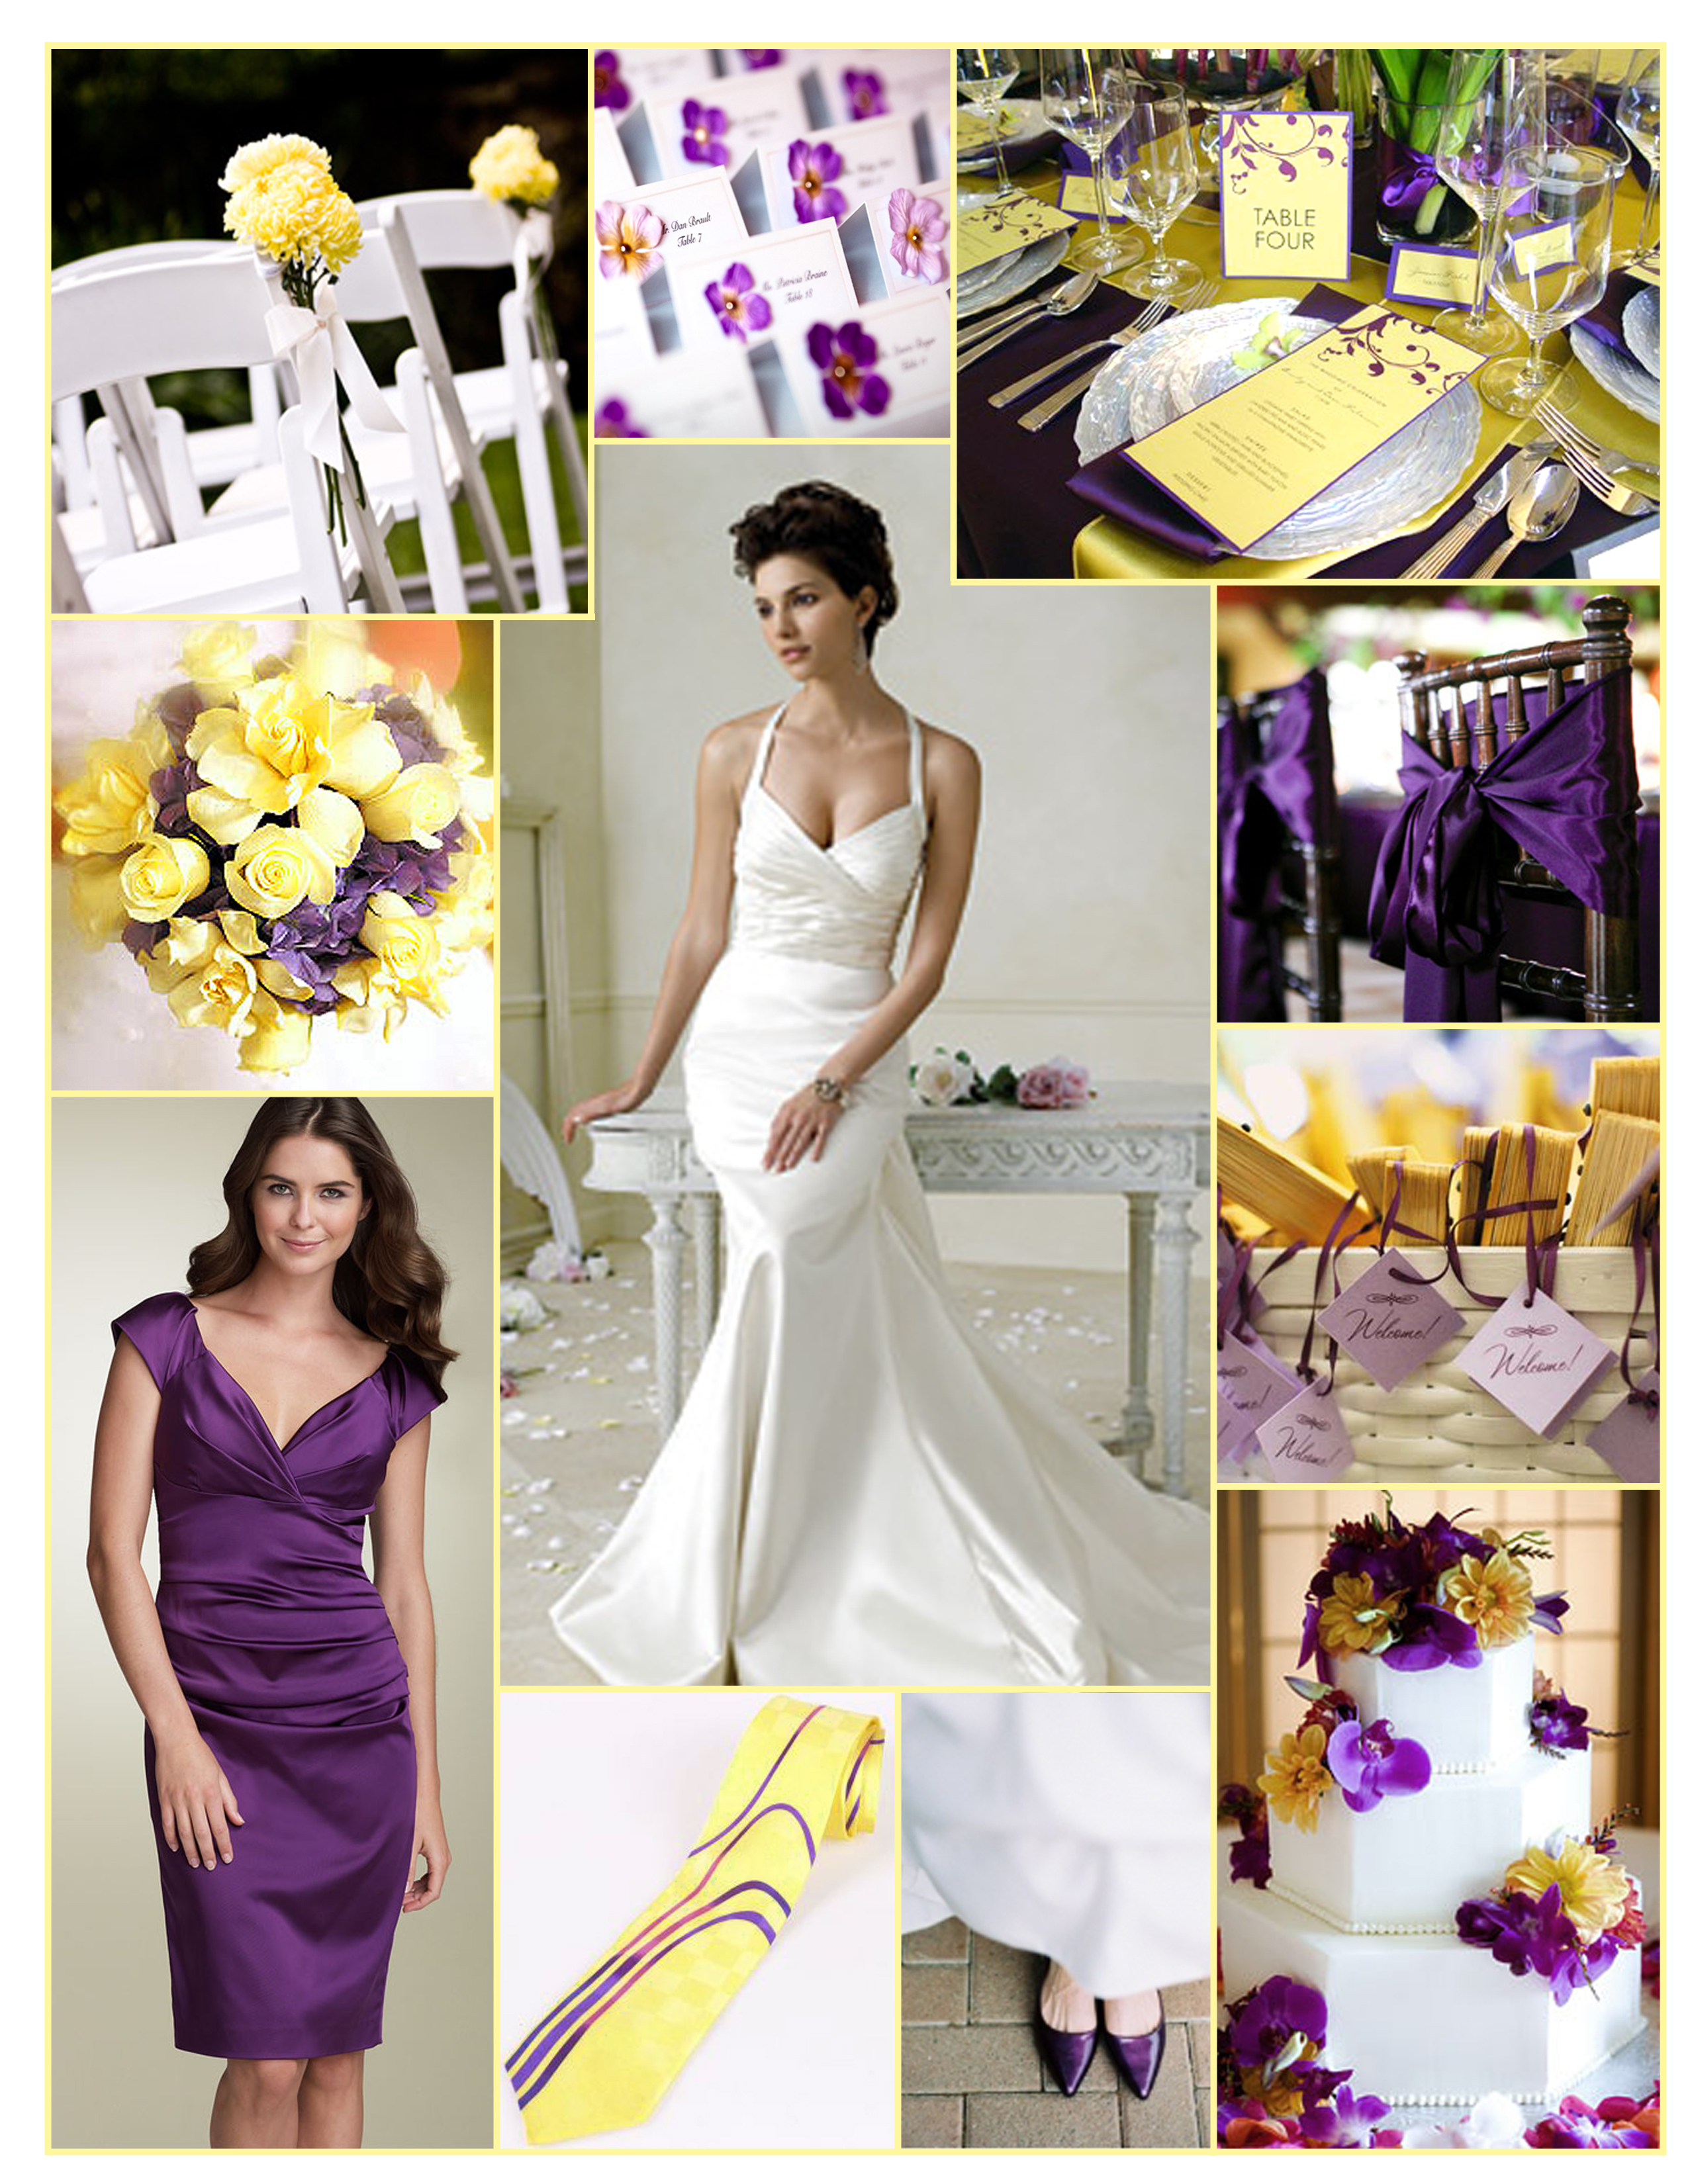 Ceremony, Inspiration, Reception, Flowers & Decor, Bridesmaids, Bridesmaids Dresses, Wedding Dresses, Shoes, Cakes, Fashion, white, yellow, purple, cake, dress, Ceremony Flowers, Bridesmaid Bouquets, Spring, Flowers, Jim hjelm, Board, Nordstrom, Spring Wedding Dresses, Flower Wedding Dresses